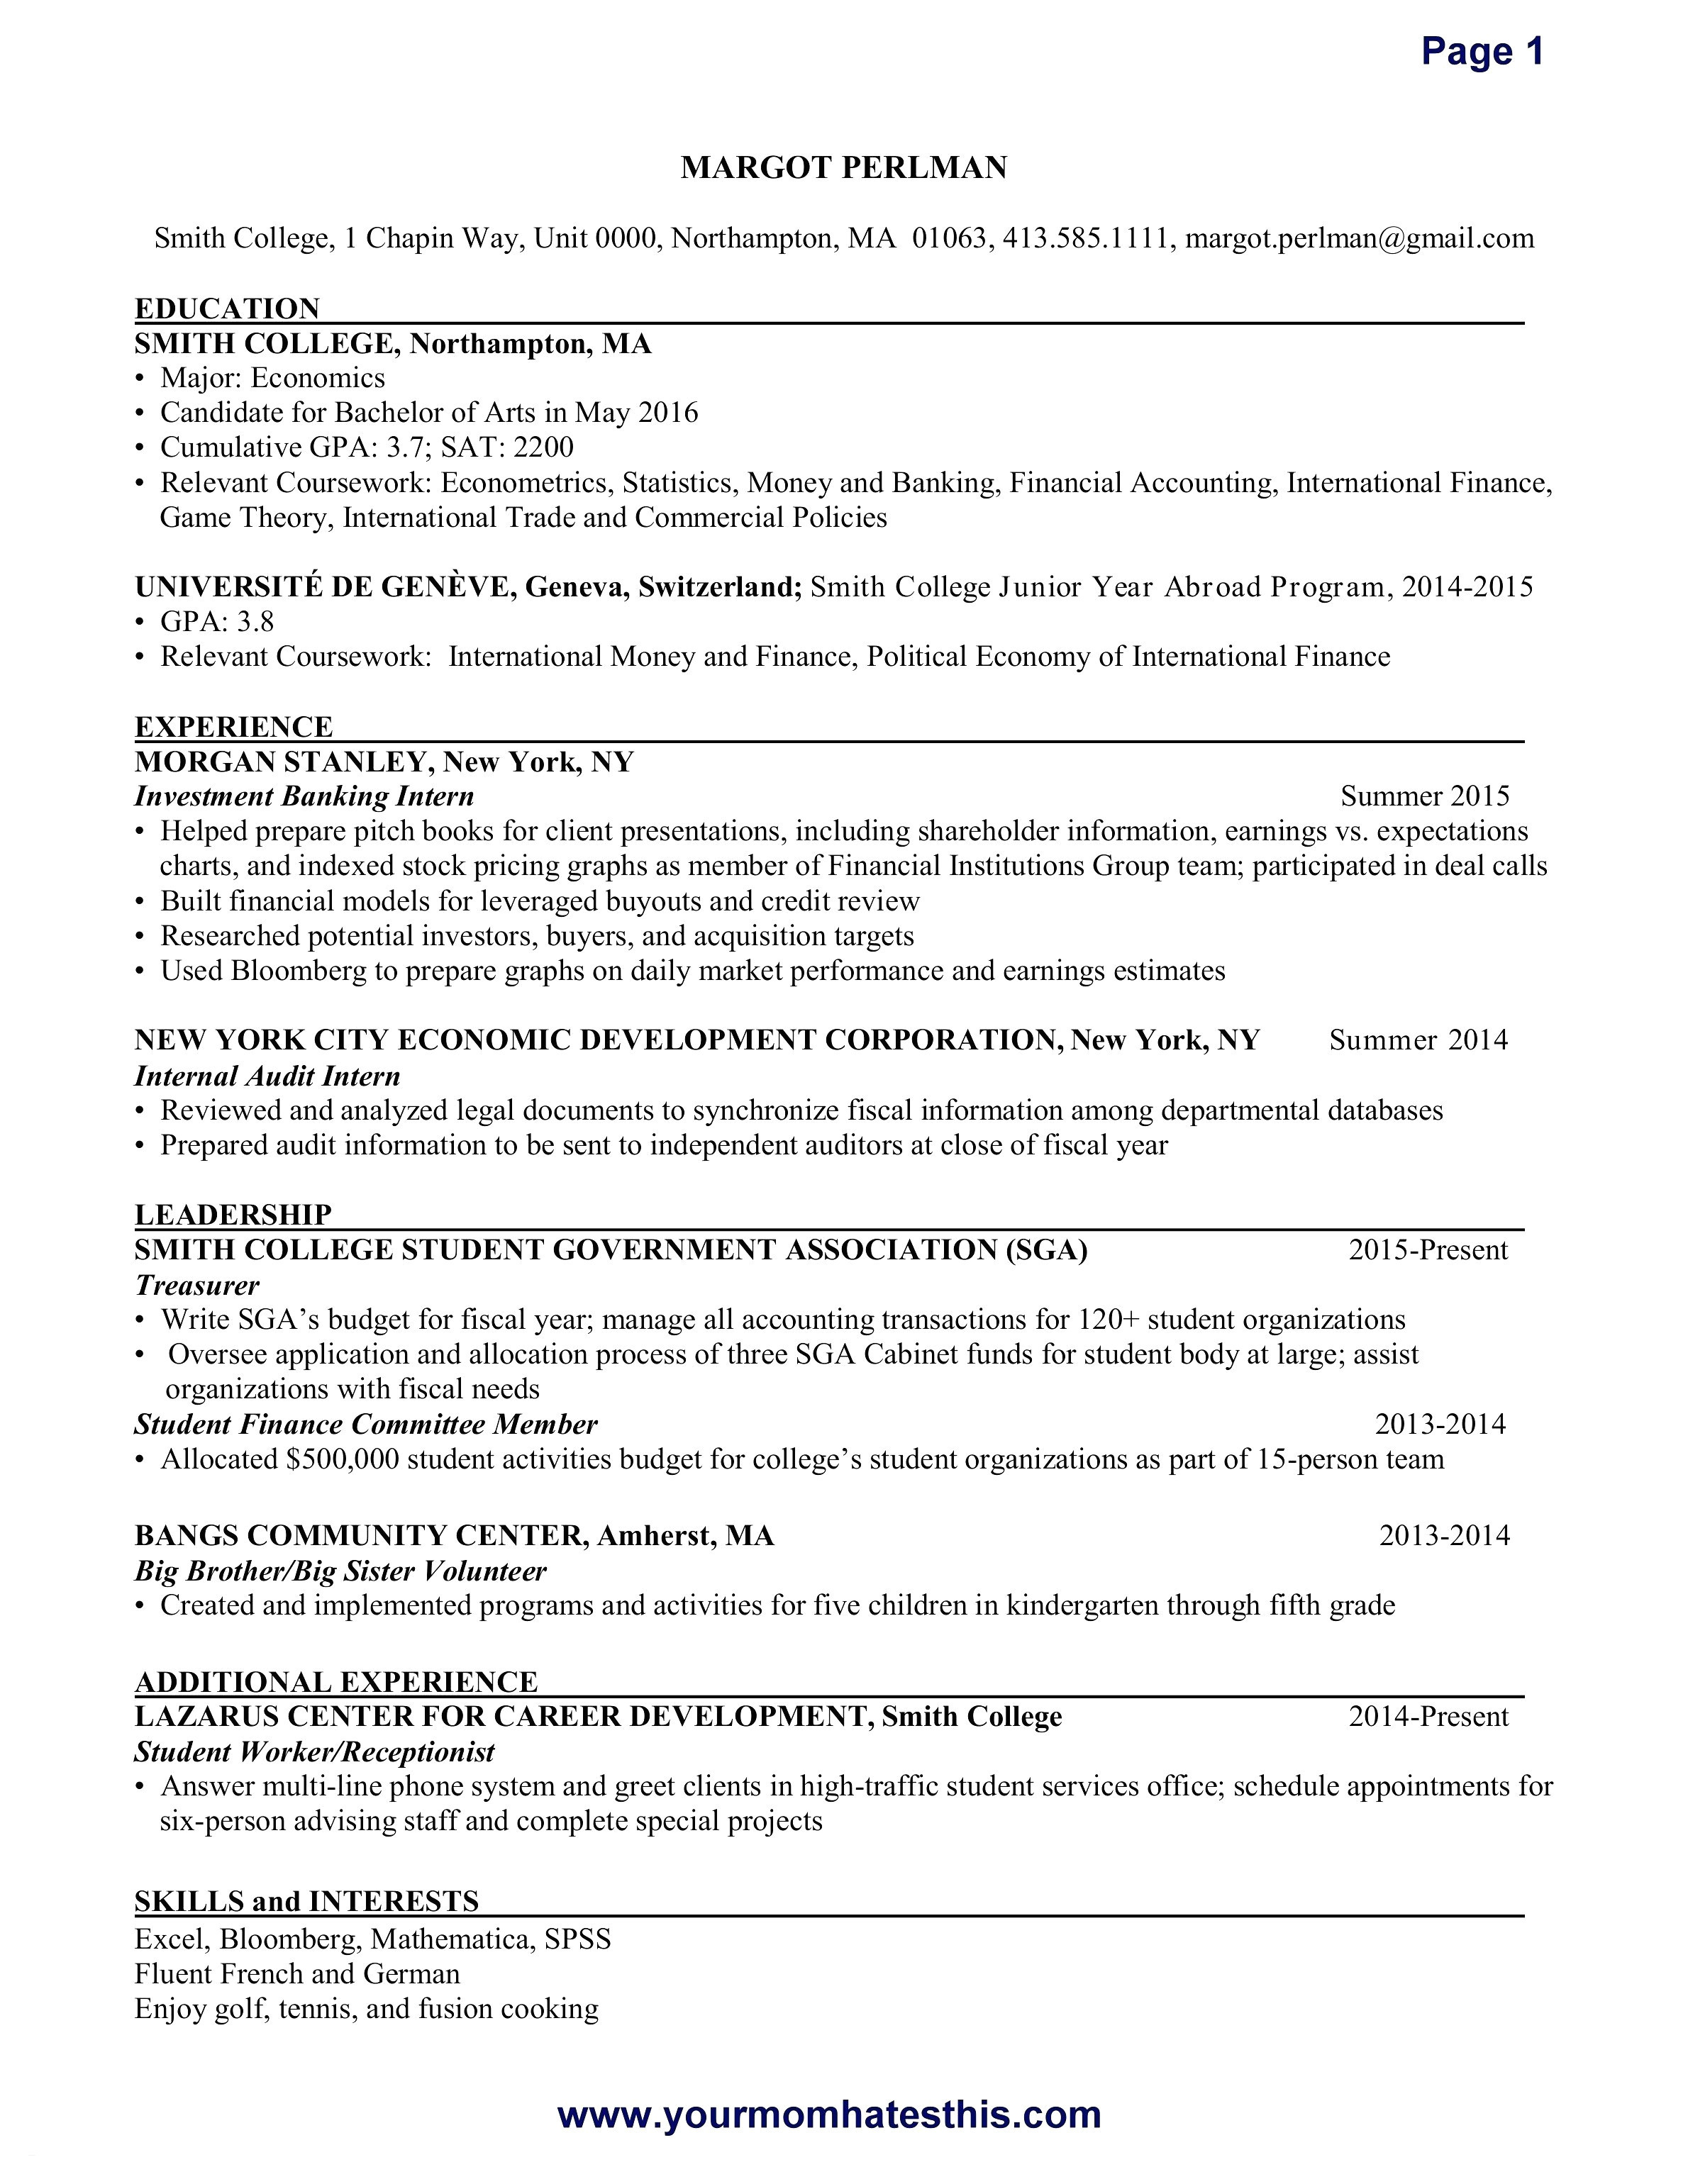 Free Internship Resume Template - Awesome Security Ficer Resume Sample